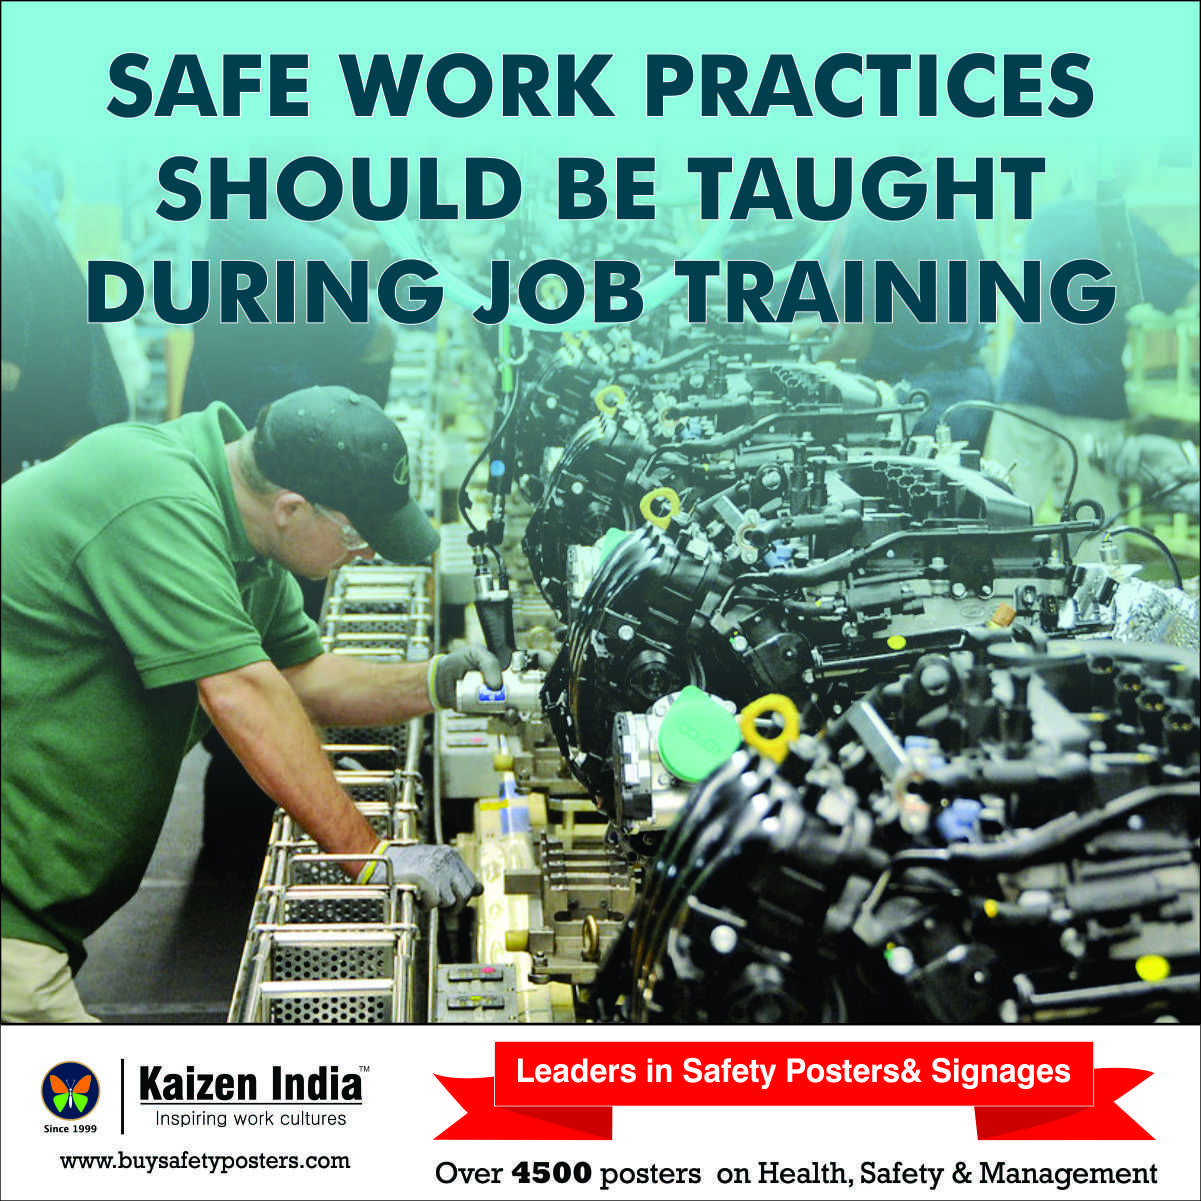 Safe work practices should be taught during Job Training